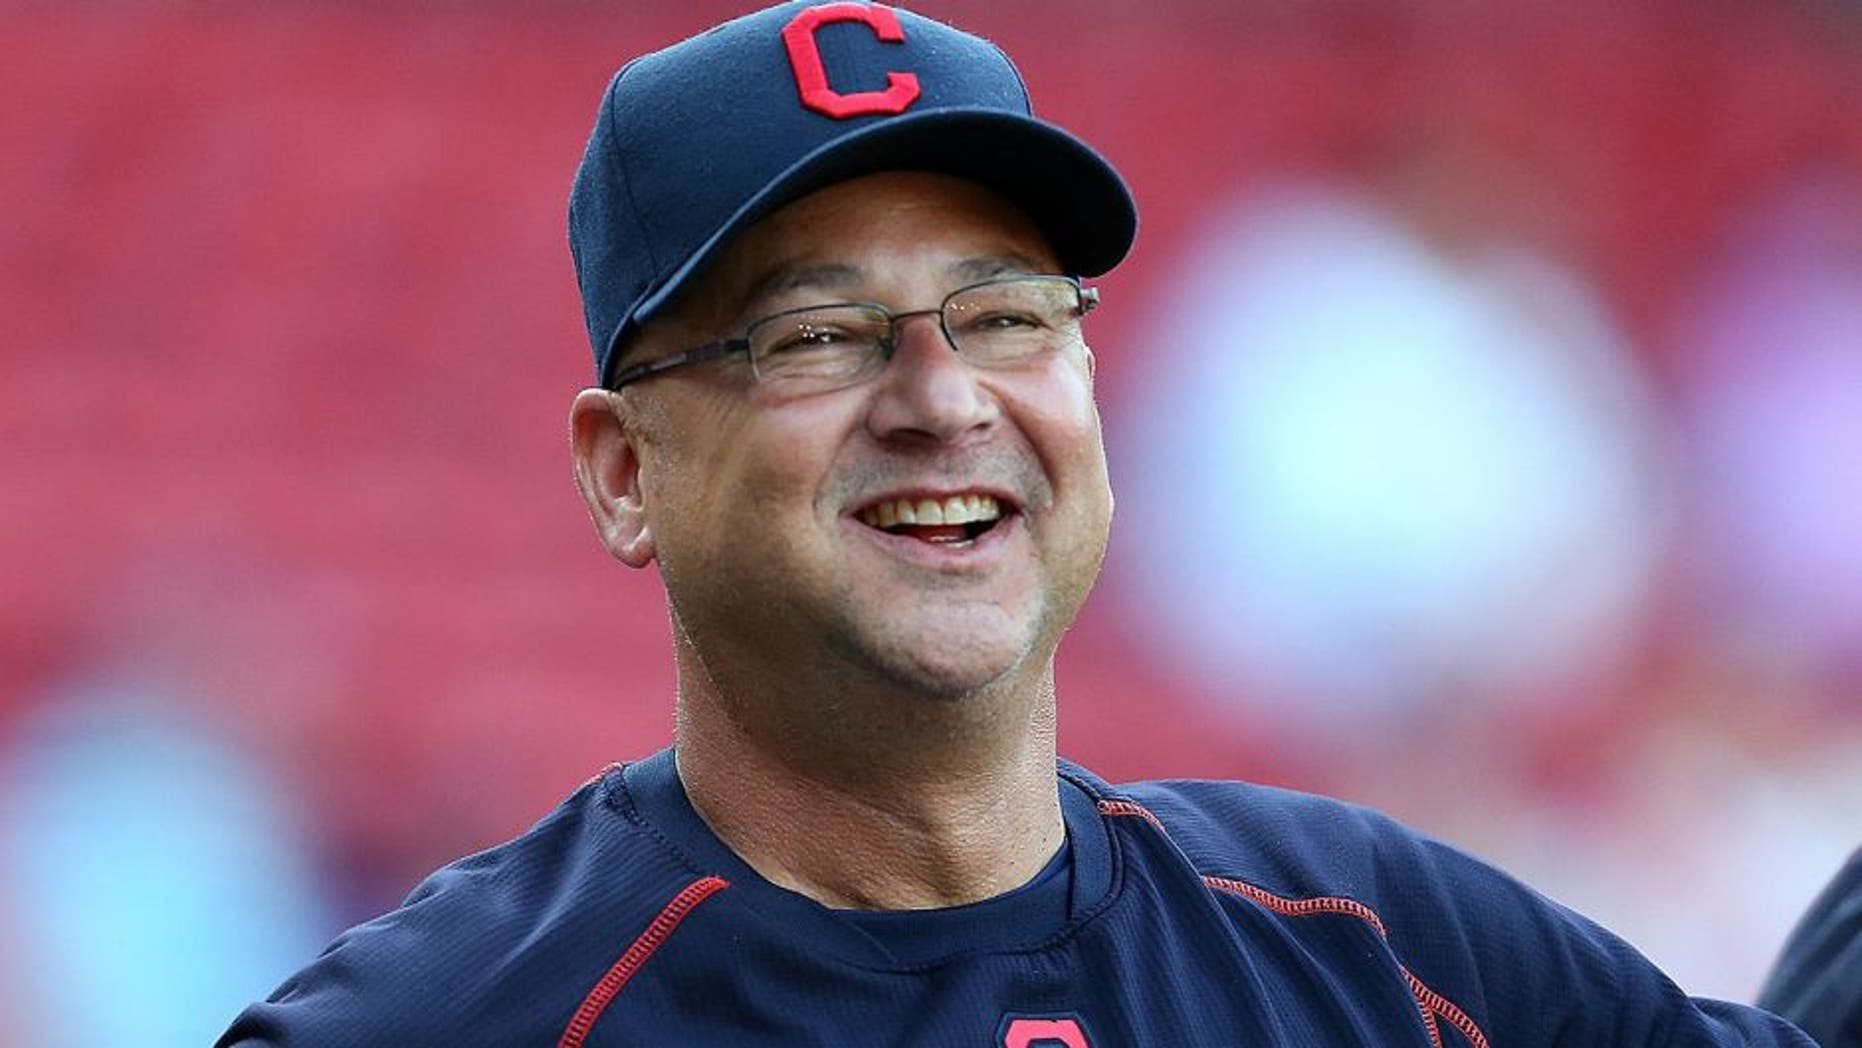 BOSTON, MA - AUGUST 19: Terry Francona #17 of the Cleveland Indians reacts during batting practice before a game with the Boston Red Sox on August 19, 2015 in Boston, Massachusetts. (Photo by Jim Rogash/Getty Images)